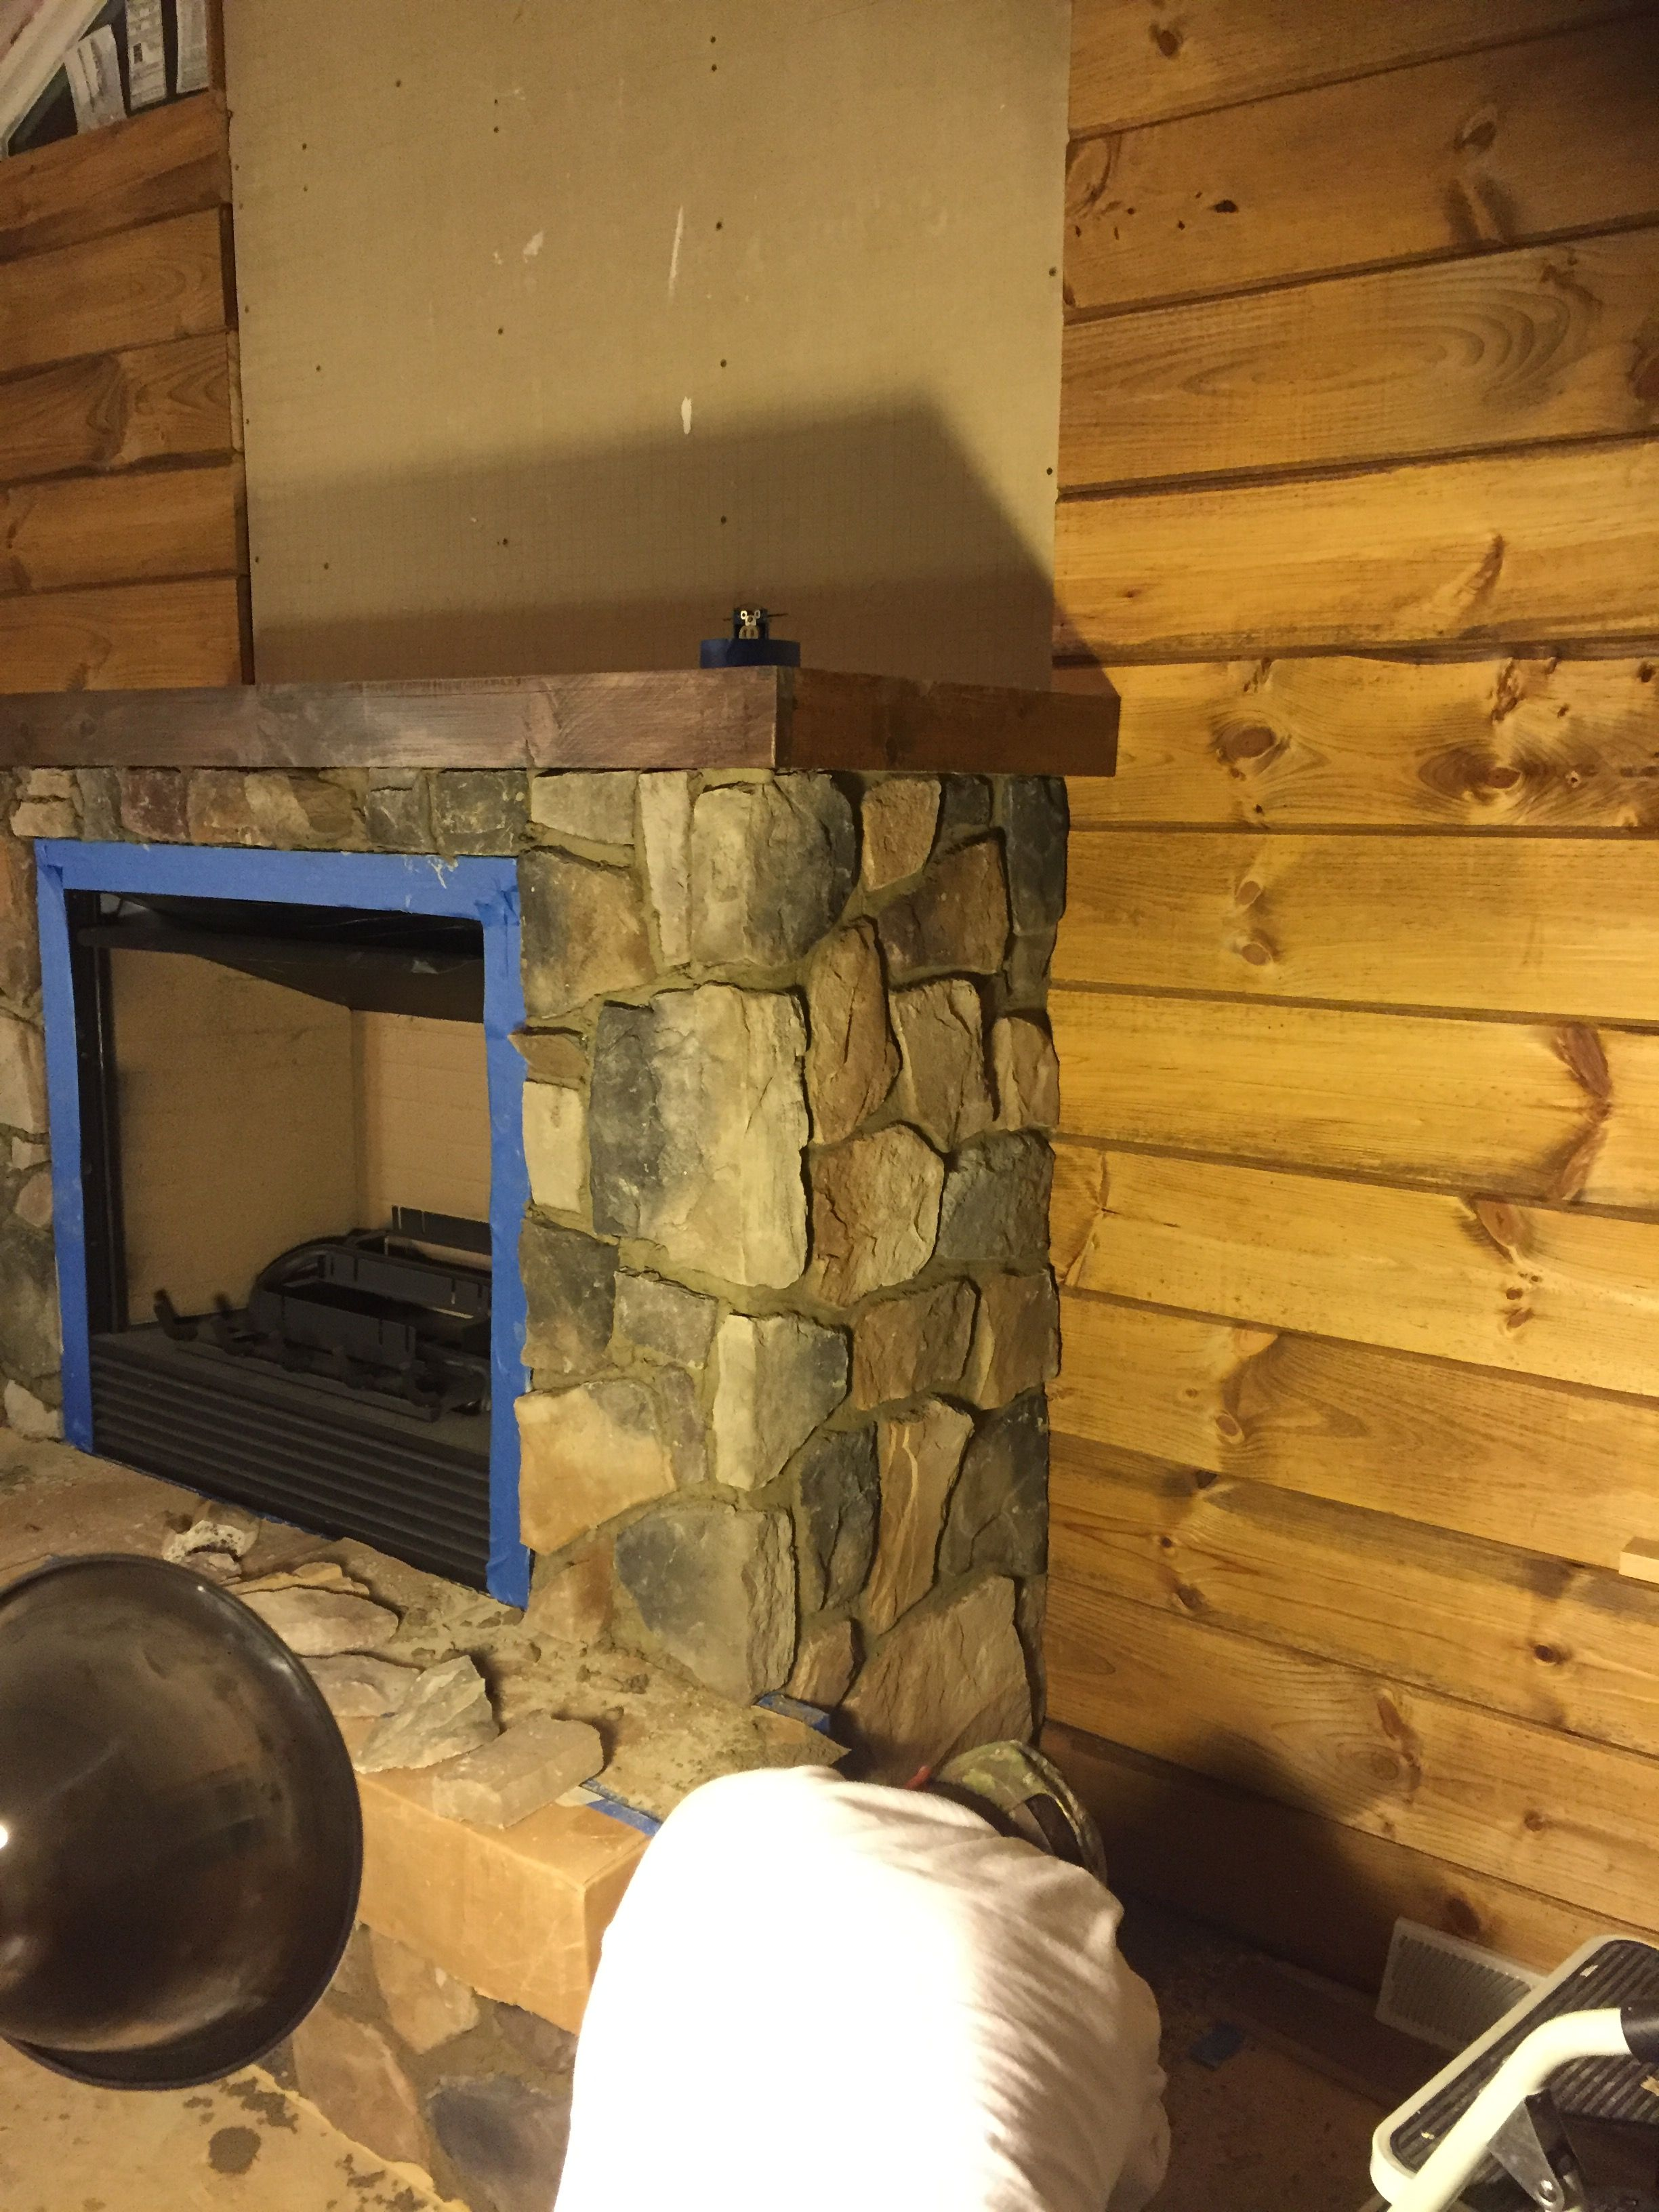 6 Stone Encased Gas Fireplace Rough Cut Knotty Pine Wall